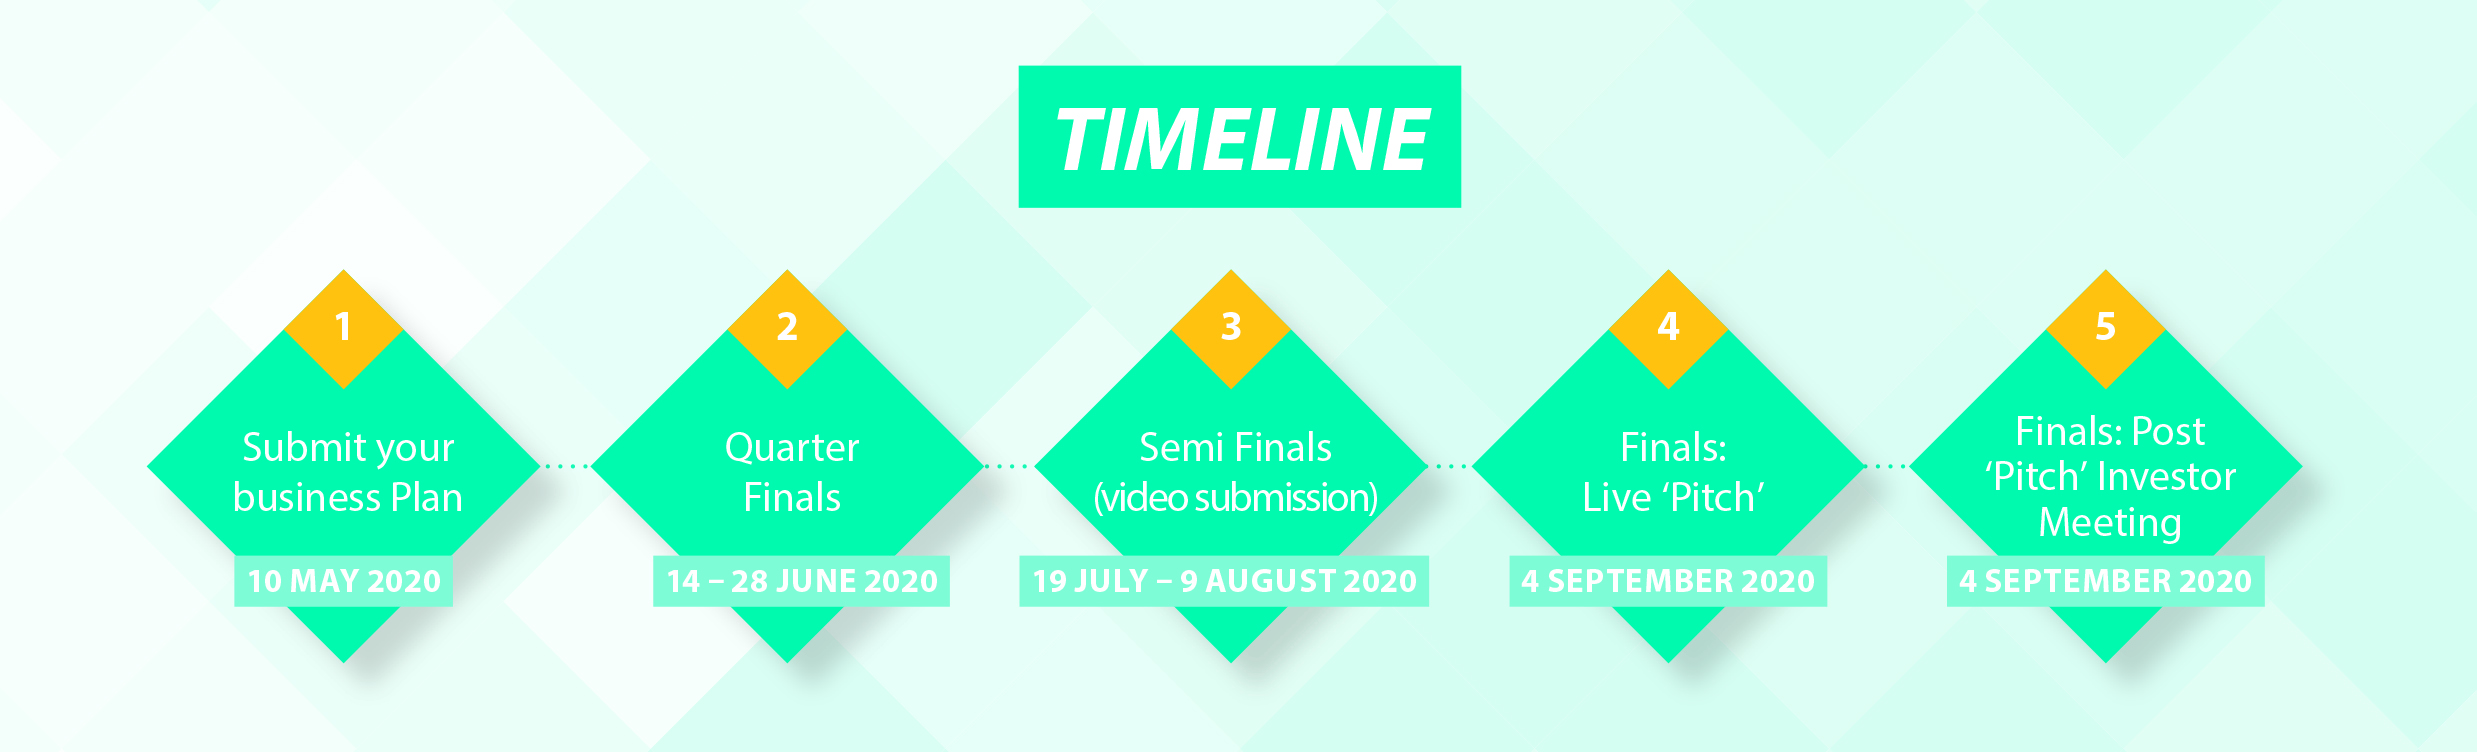 Competition timeline